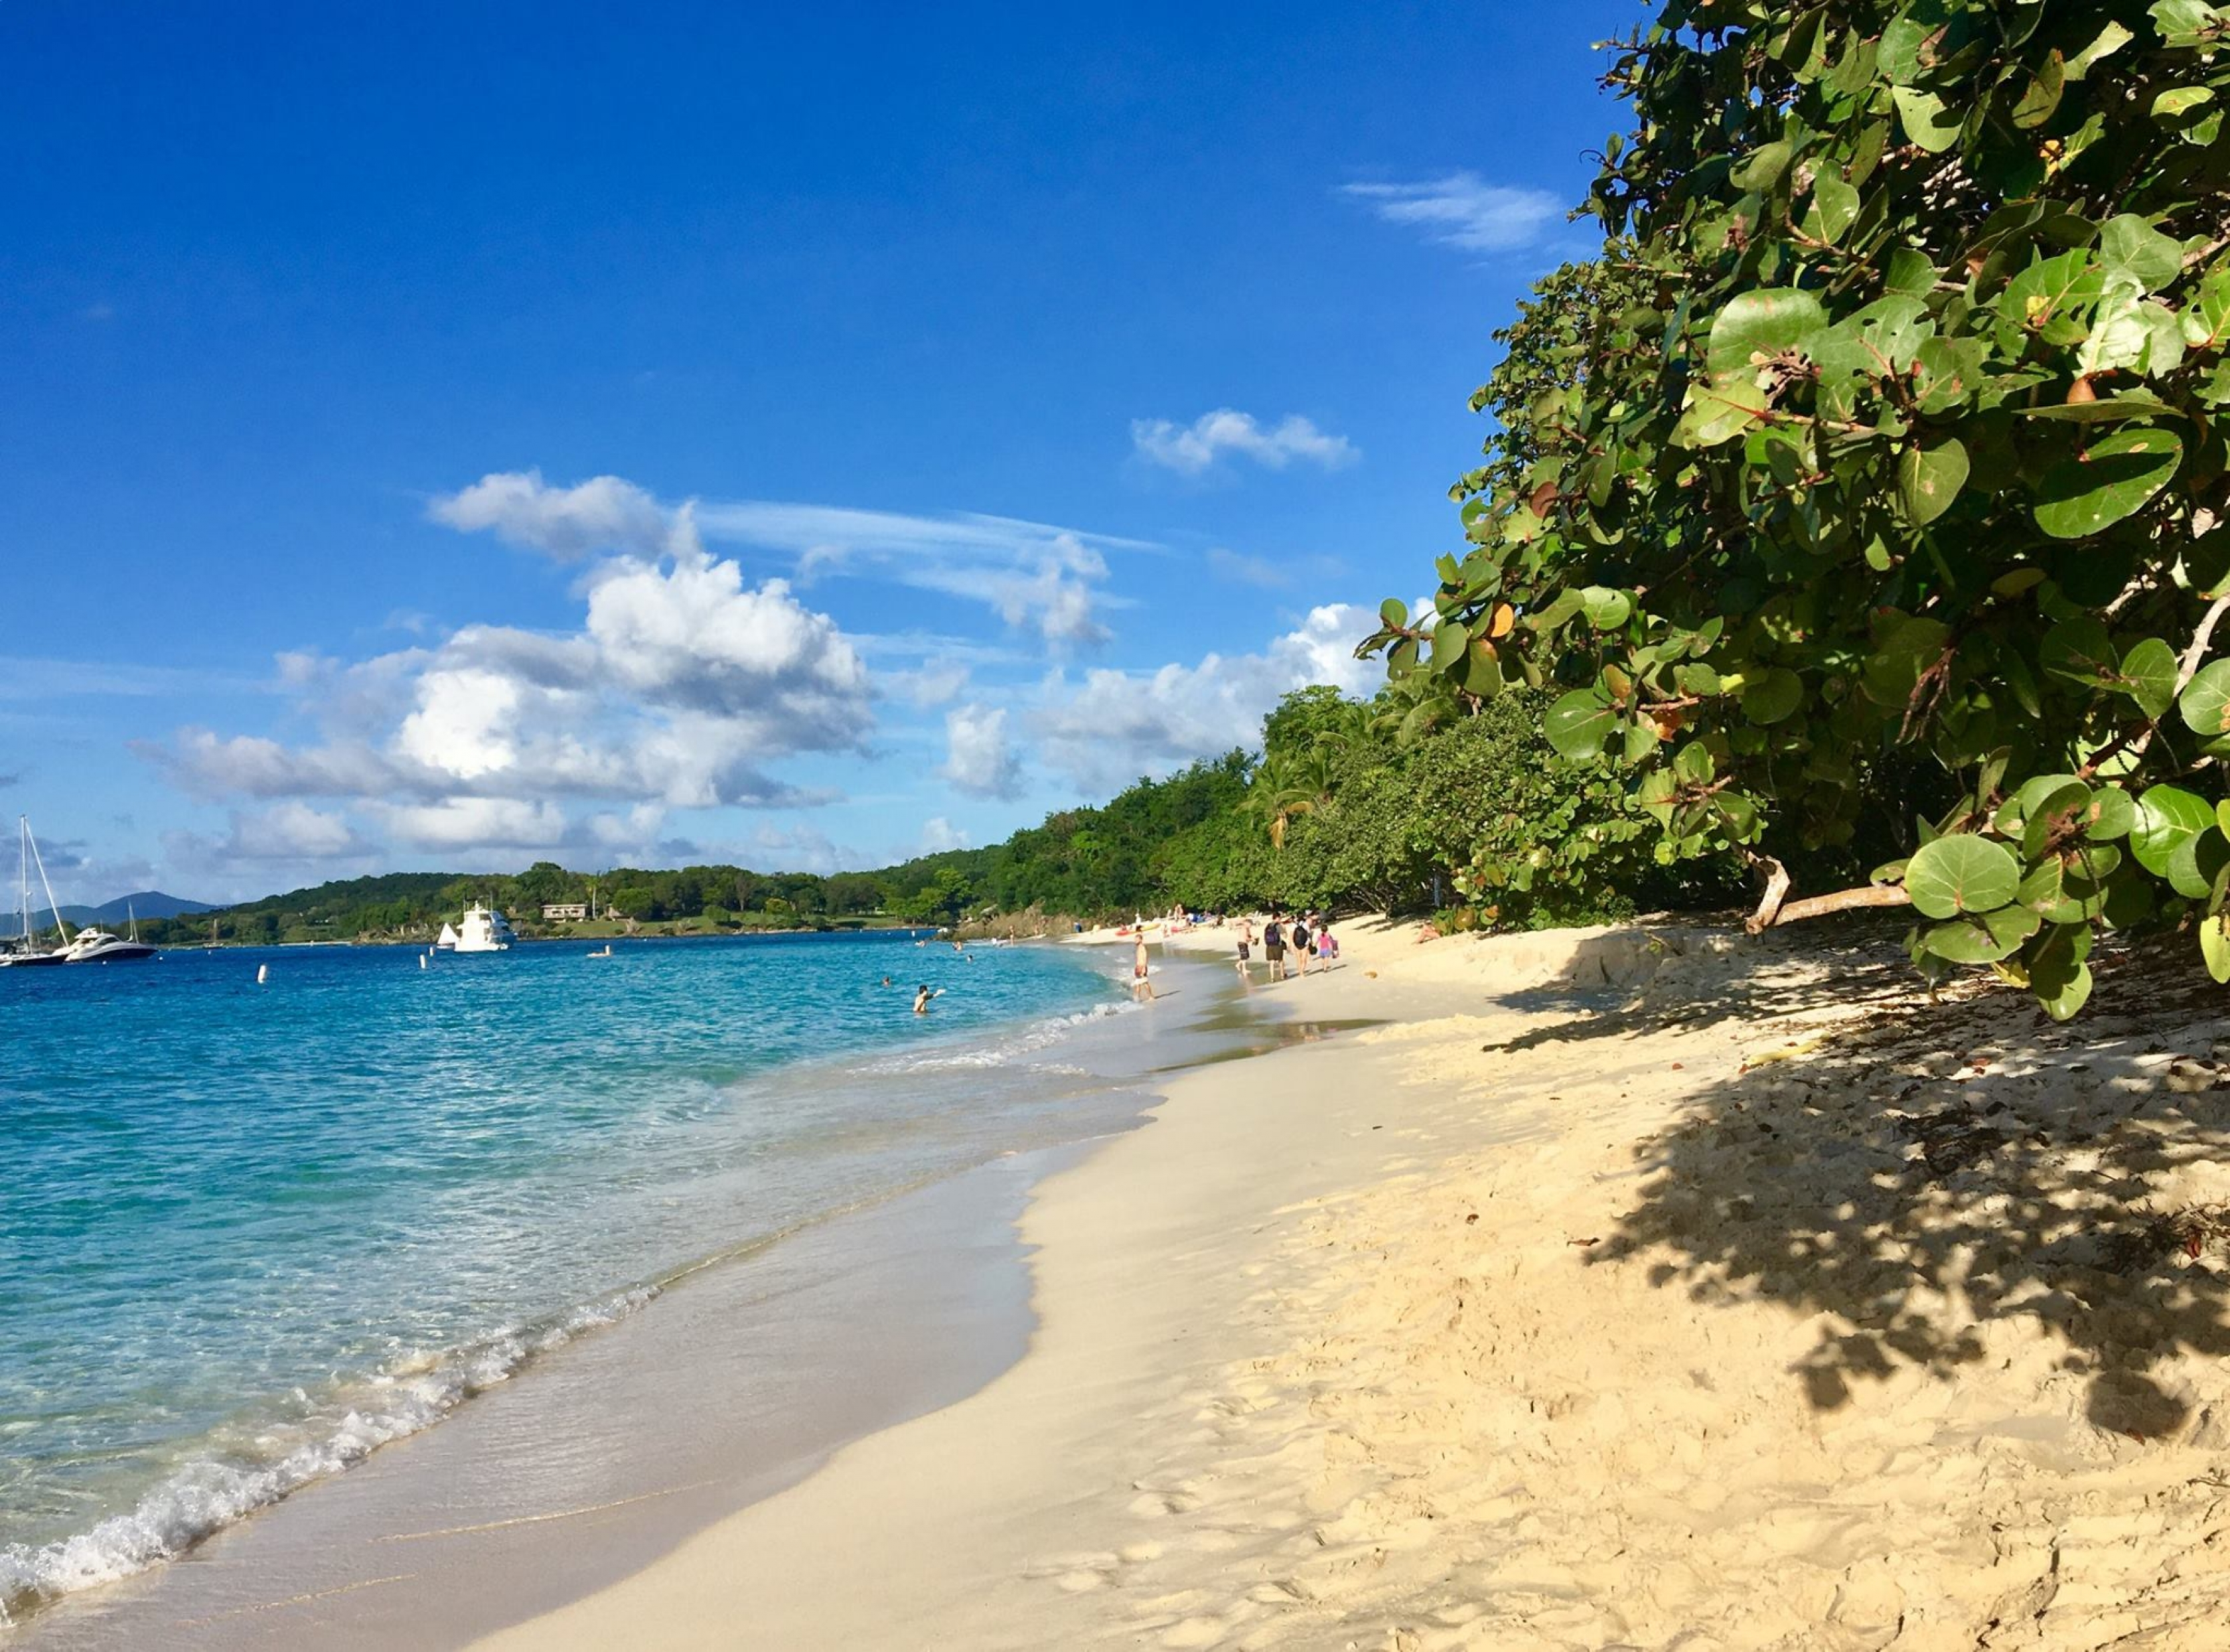 Sunny white sandy beach lined with green trees next to the blue ocean at Virgin Islands National Park